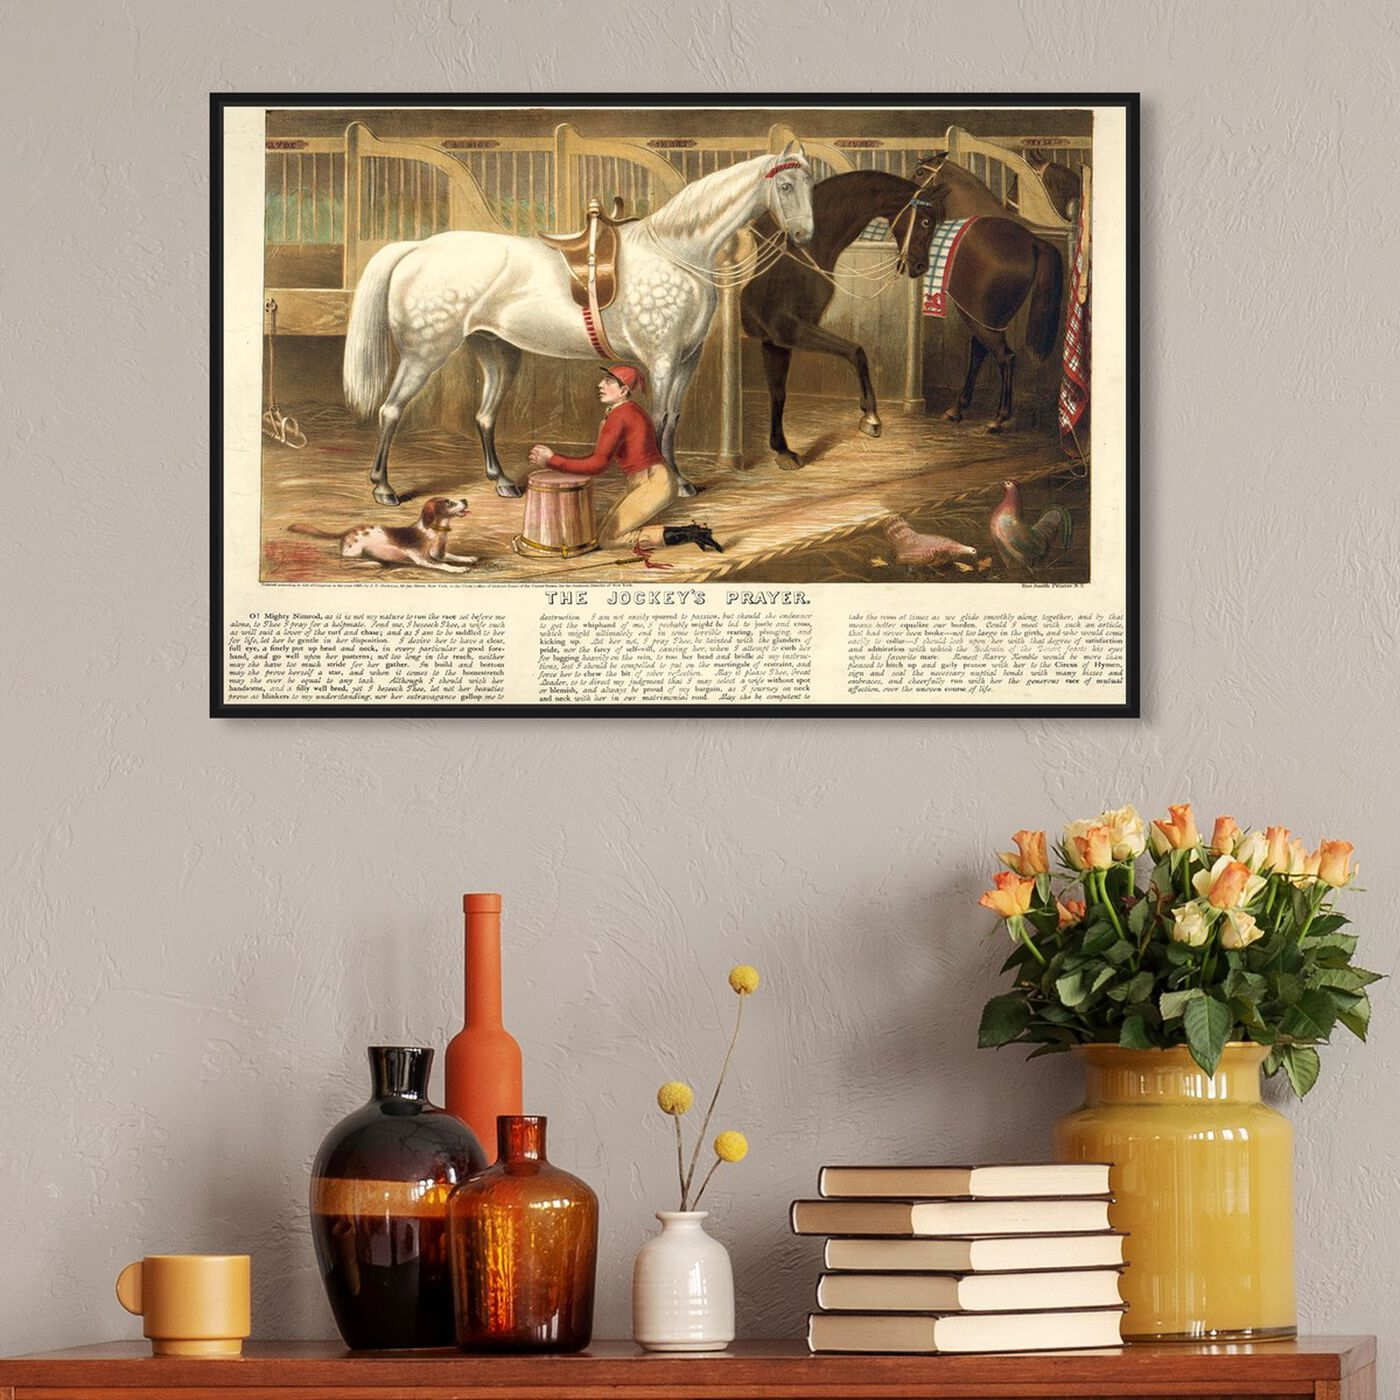 Hanging view of The Jockey's Prayer featuring animals and farm animals art.